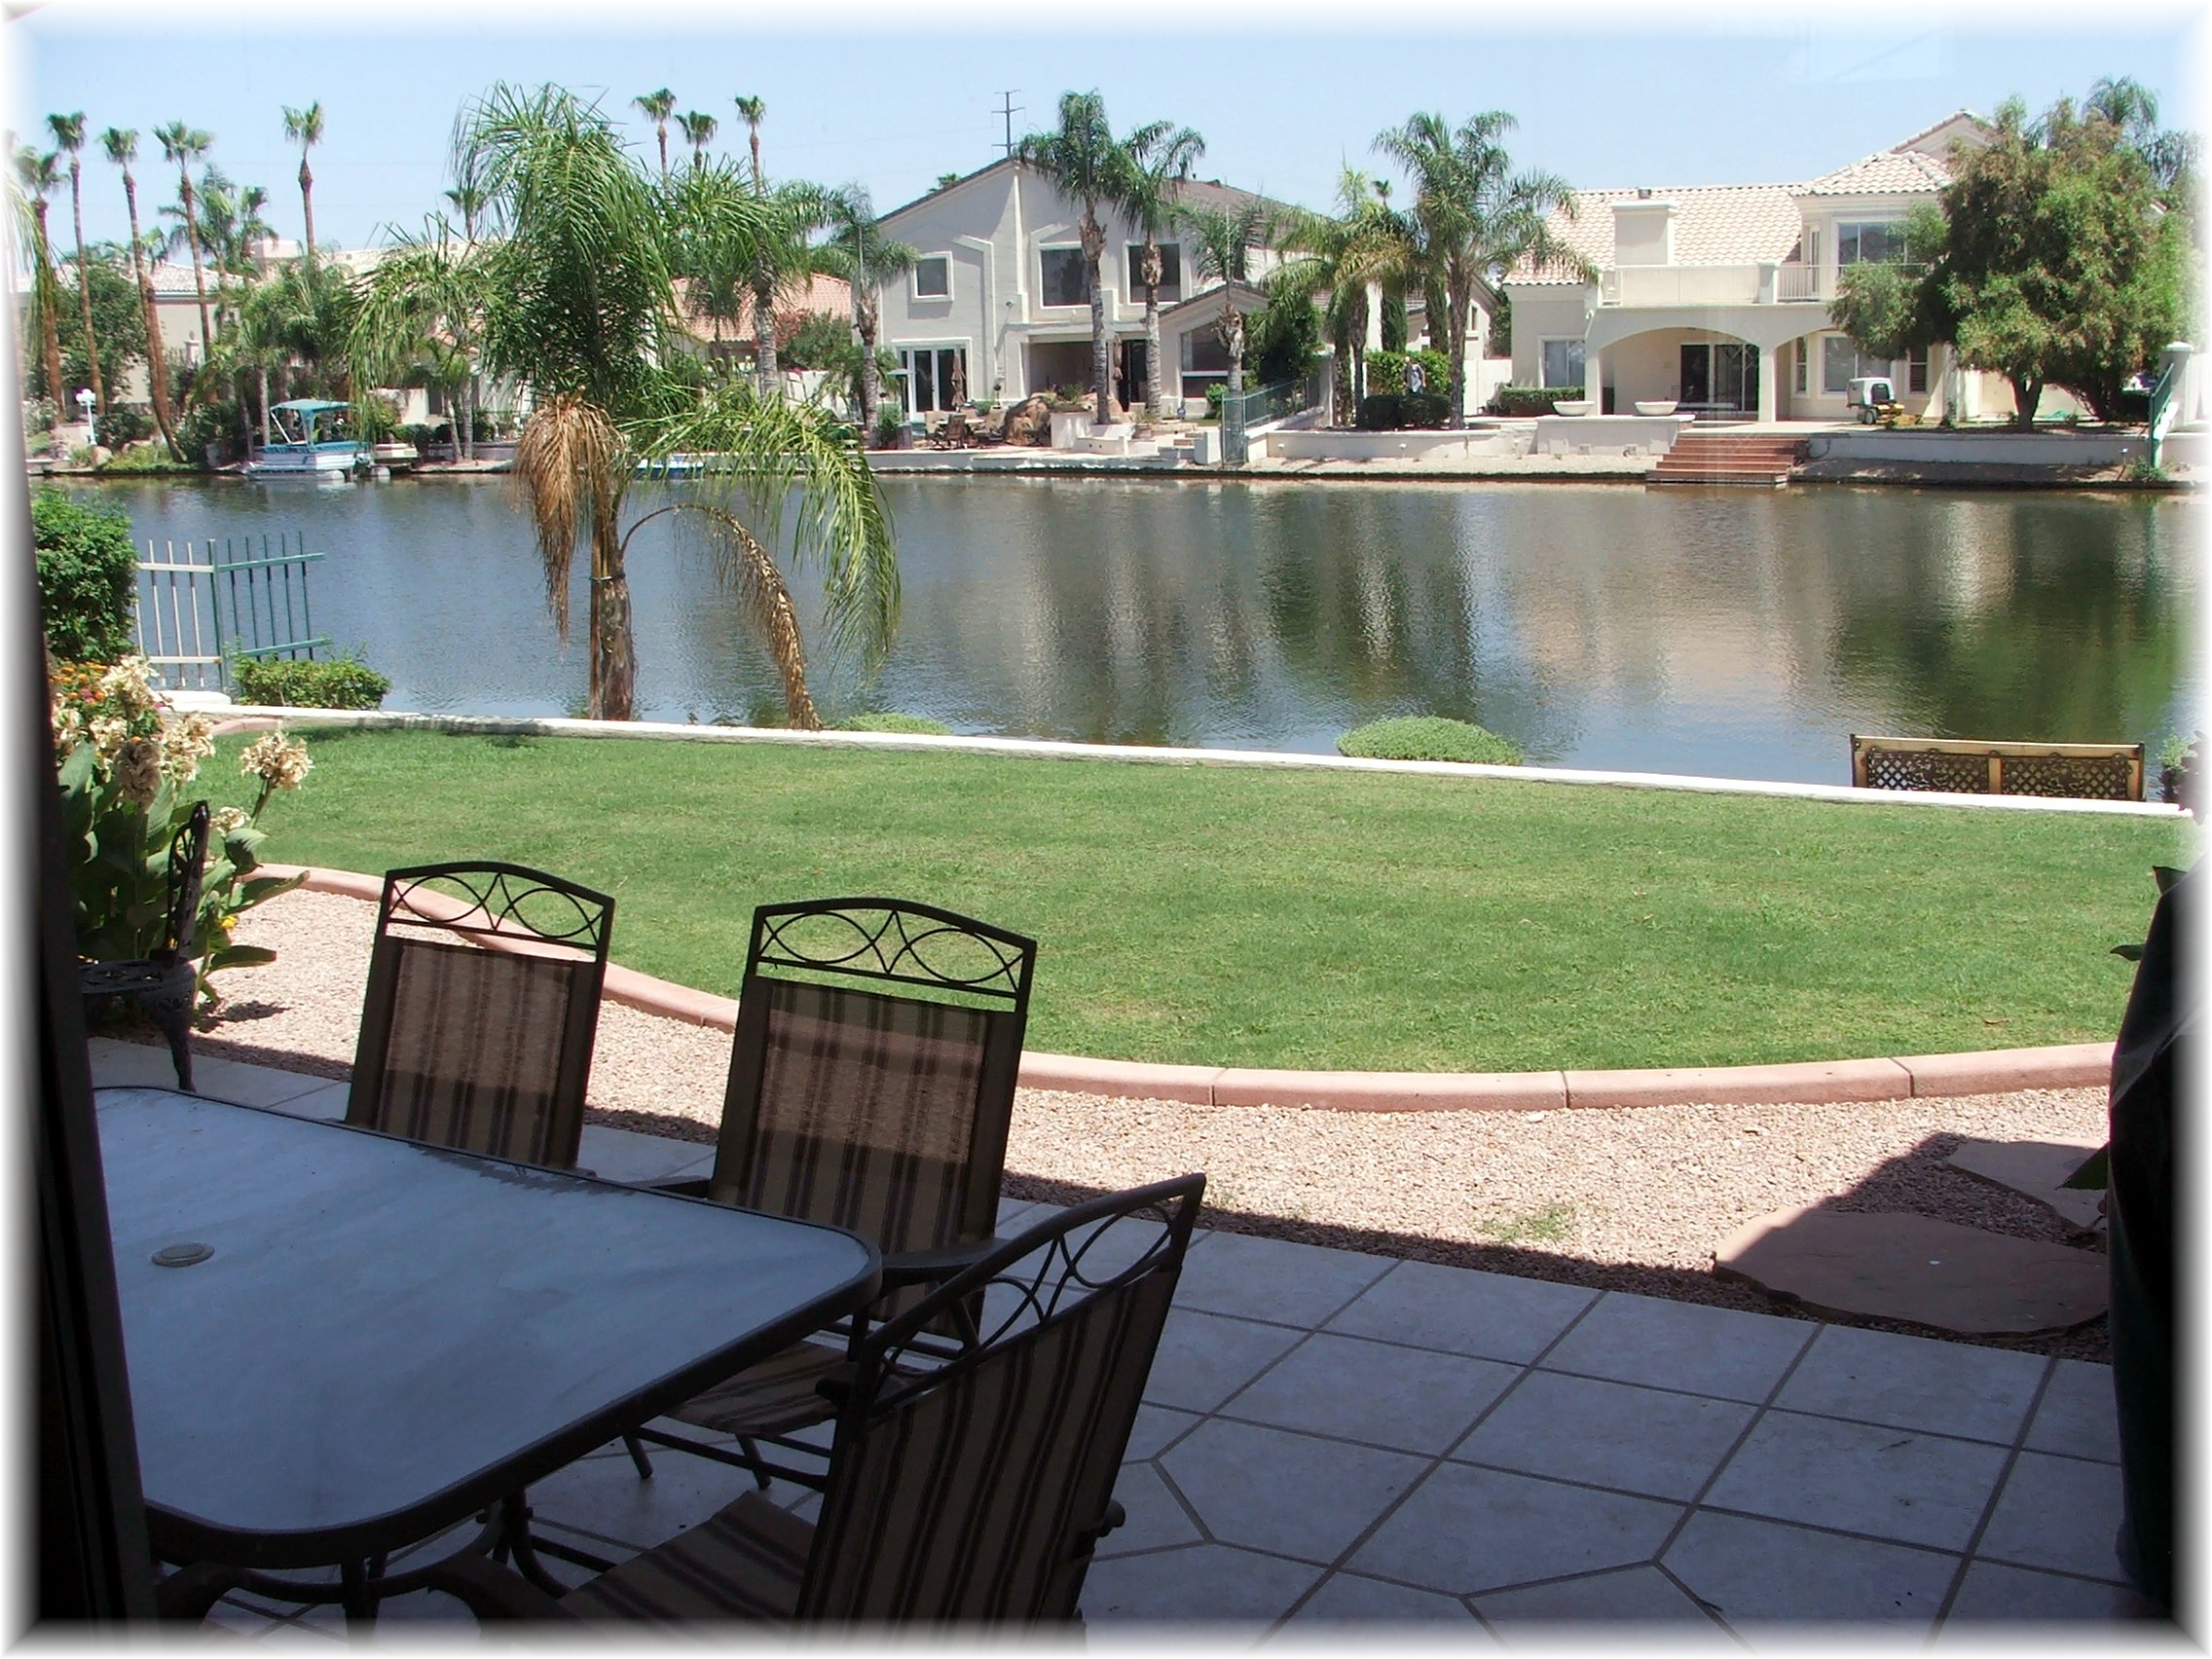 backyard waterfront lake picture phoenix arizona waterfront homes. Black Bedroom Furniture Sets. Home Design Ideas